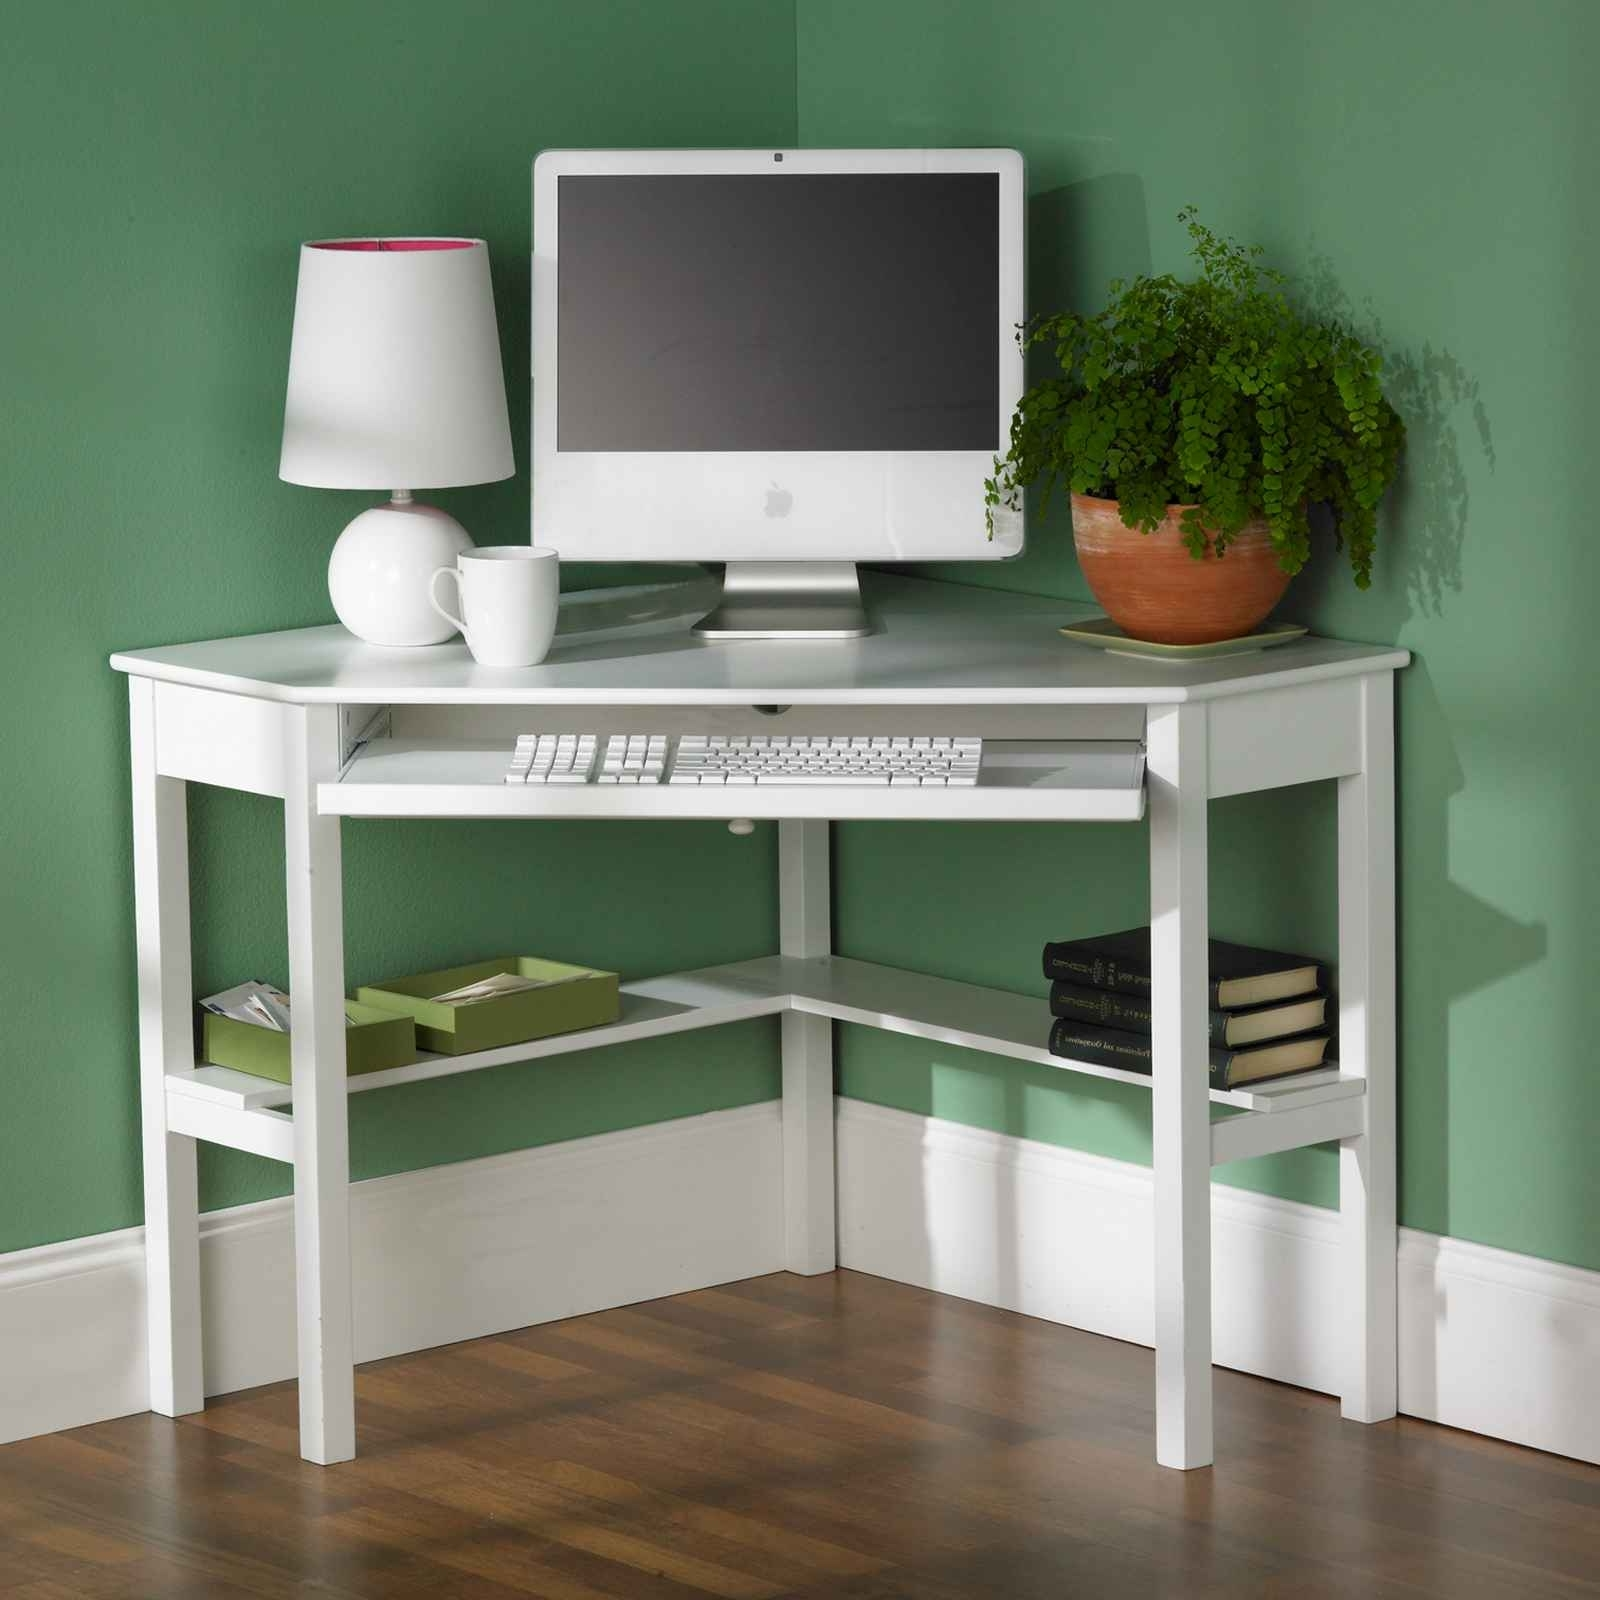 2019 Desk: 2017 Computer Desk Cheap Space Saving Design Cheap Corner With Regard To Computer Desks For Small Areas (View 13 of 20)